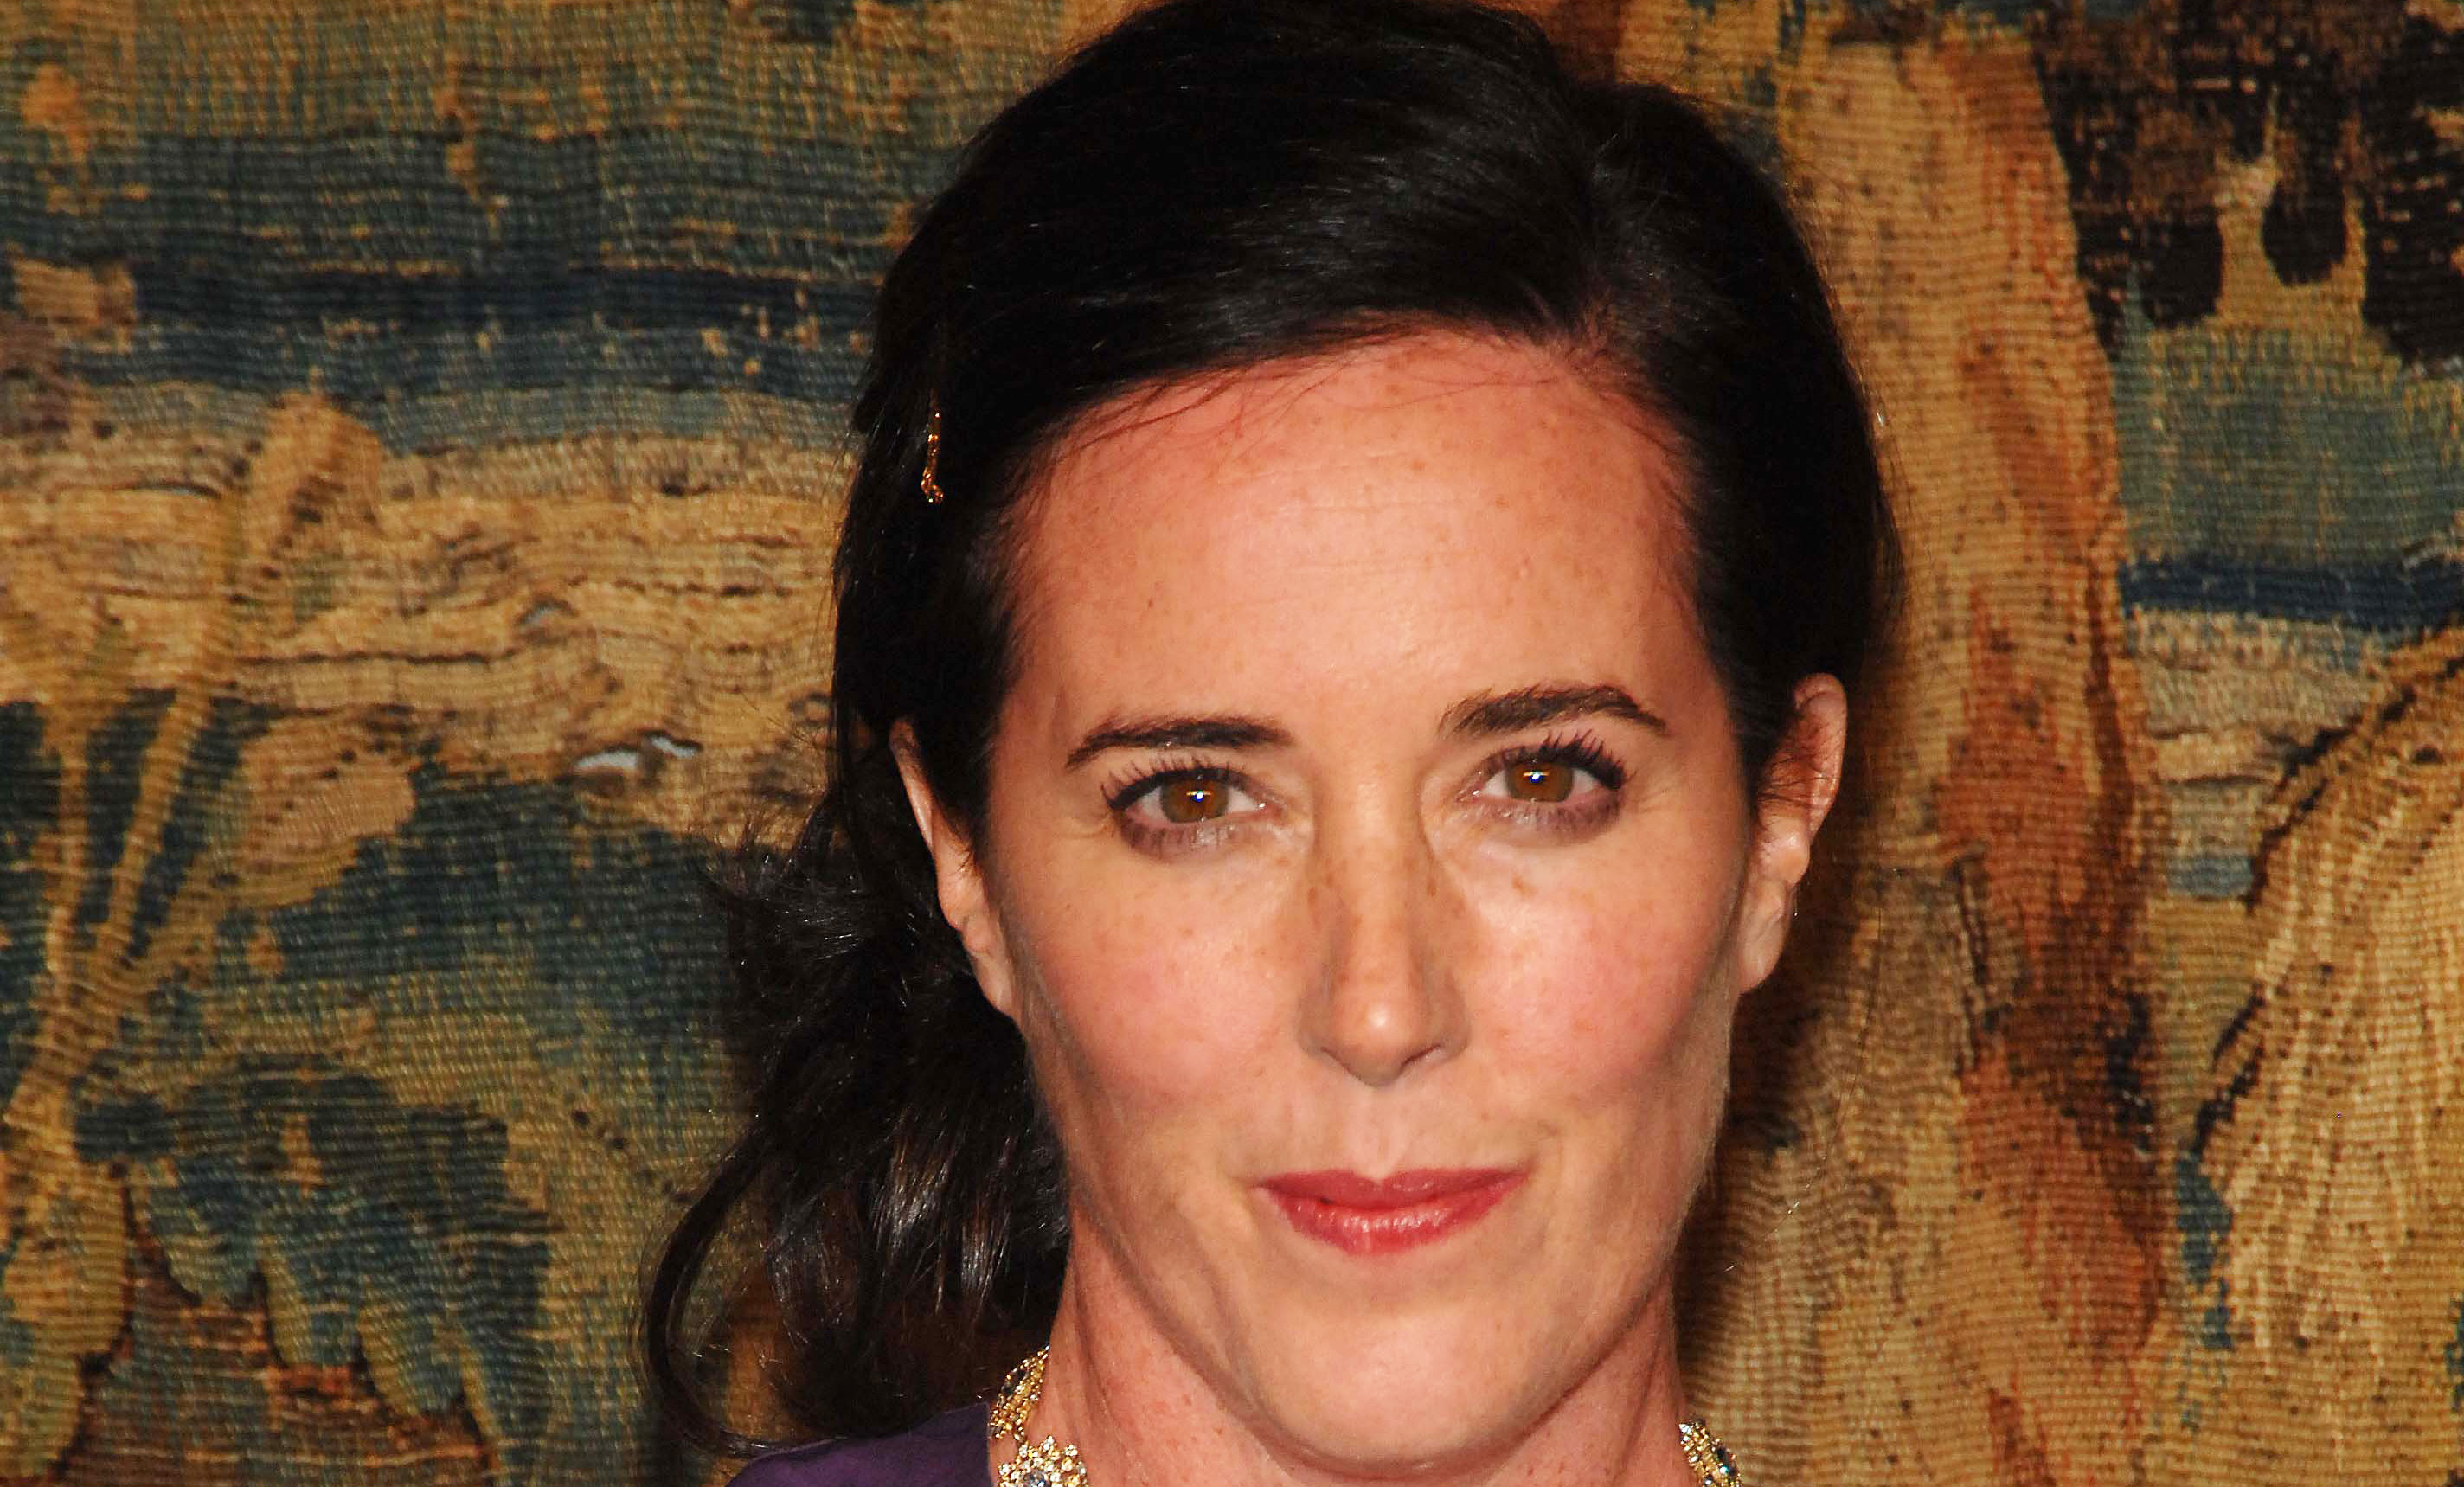 Kate Spade Fashion Brand Releases Statement On Founders